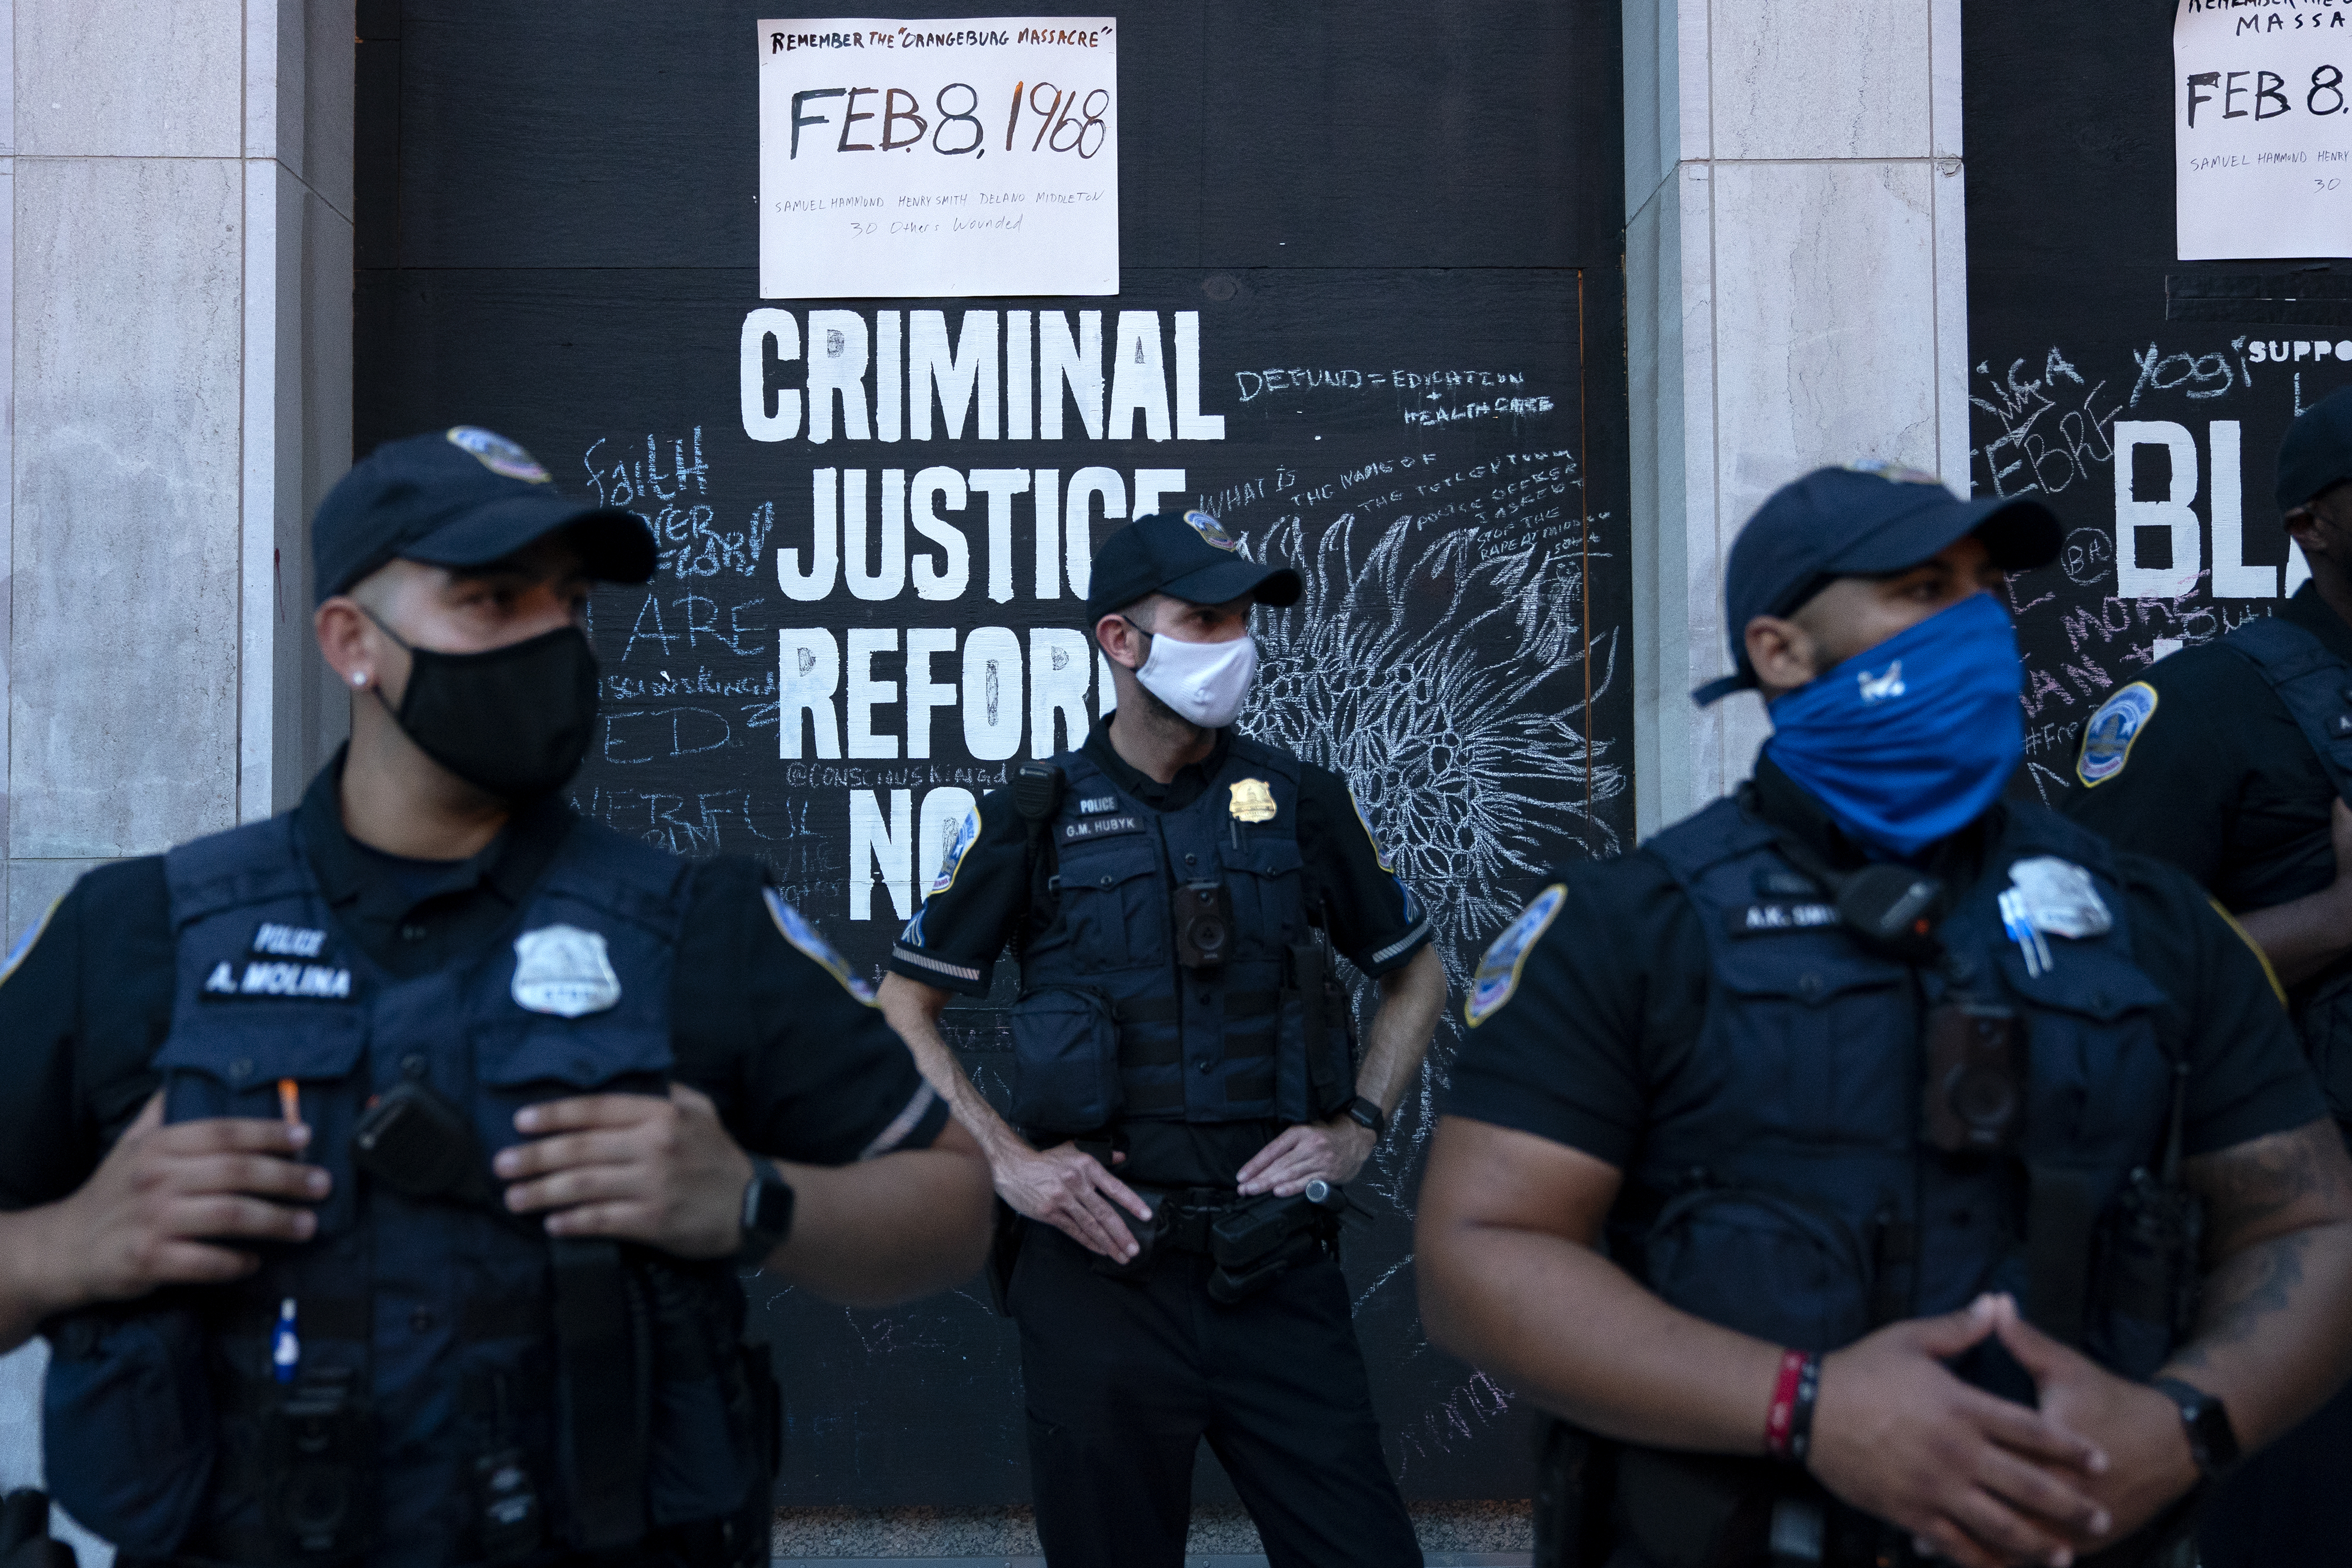 Police officers wearing protective masks stand in front of a criminal justice reform sign during the Republican National Convention in Washington, D.C., on Aug. 27, 2020.